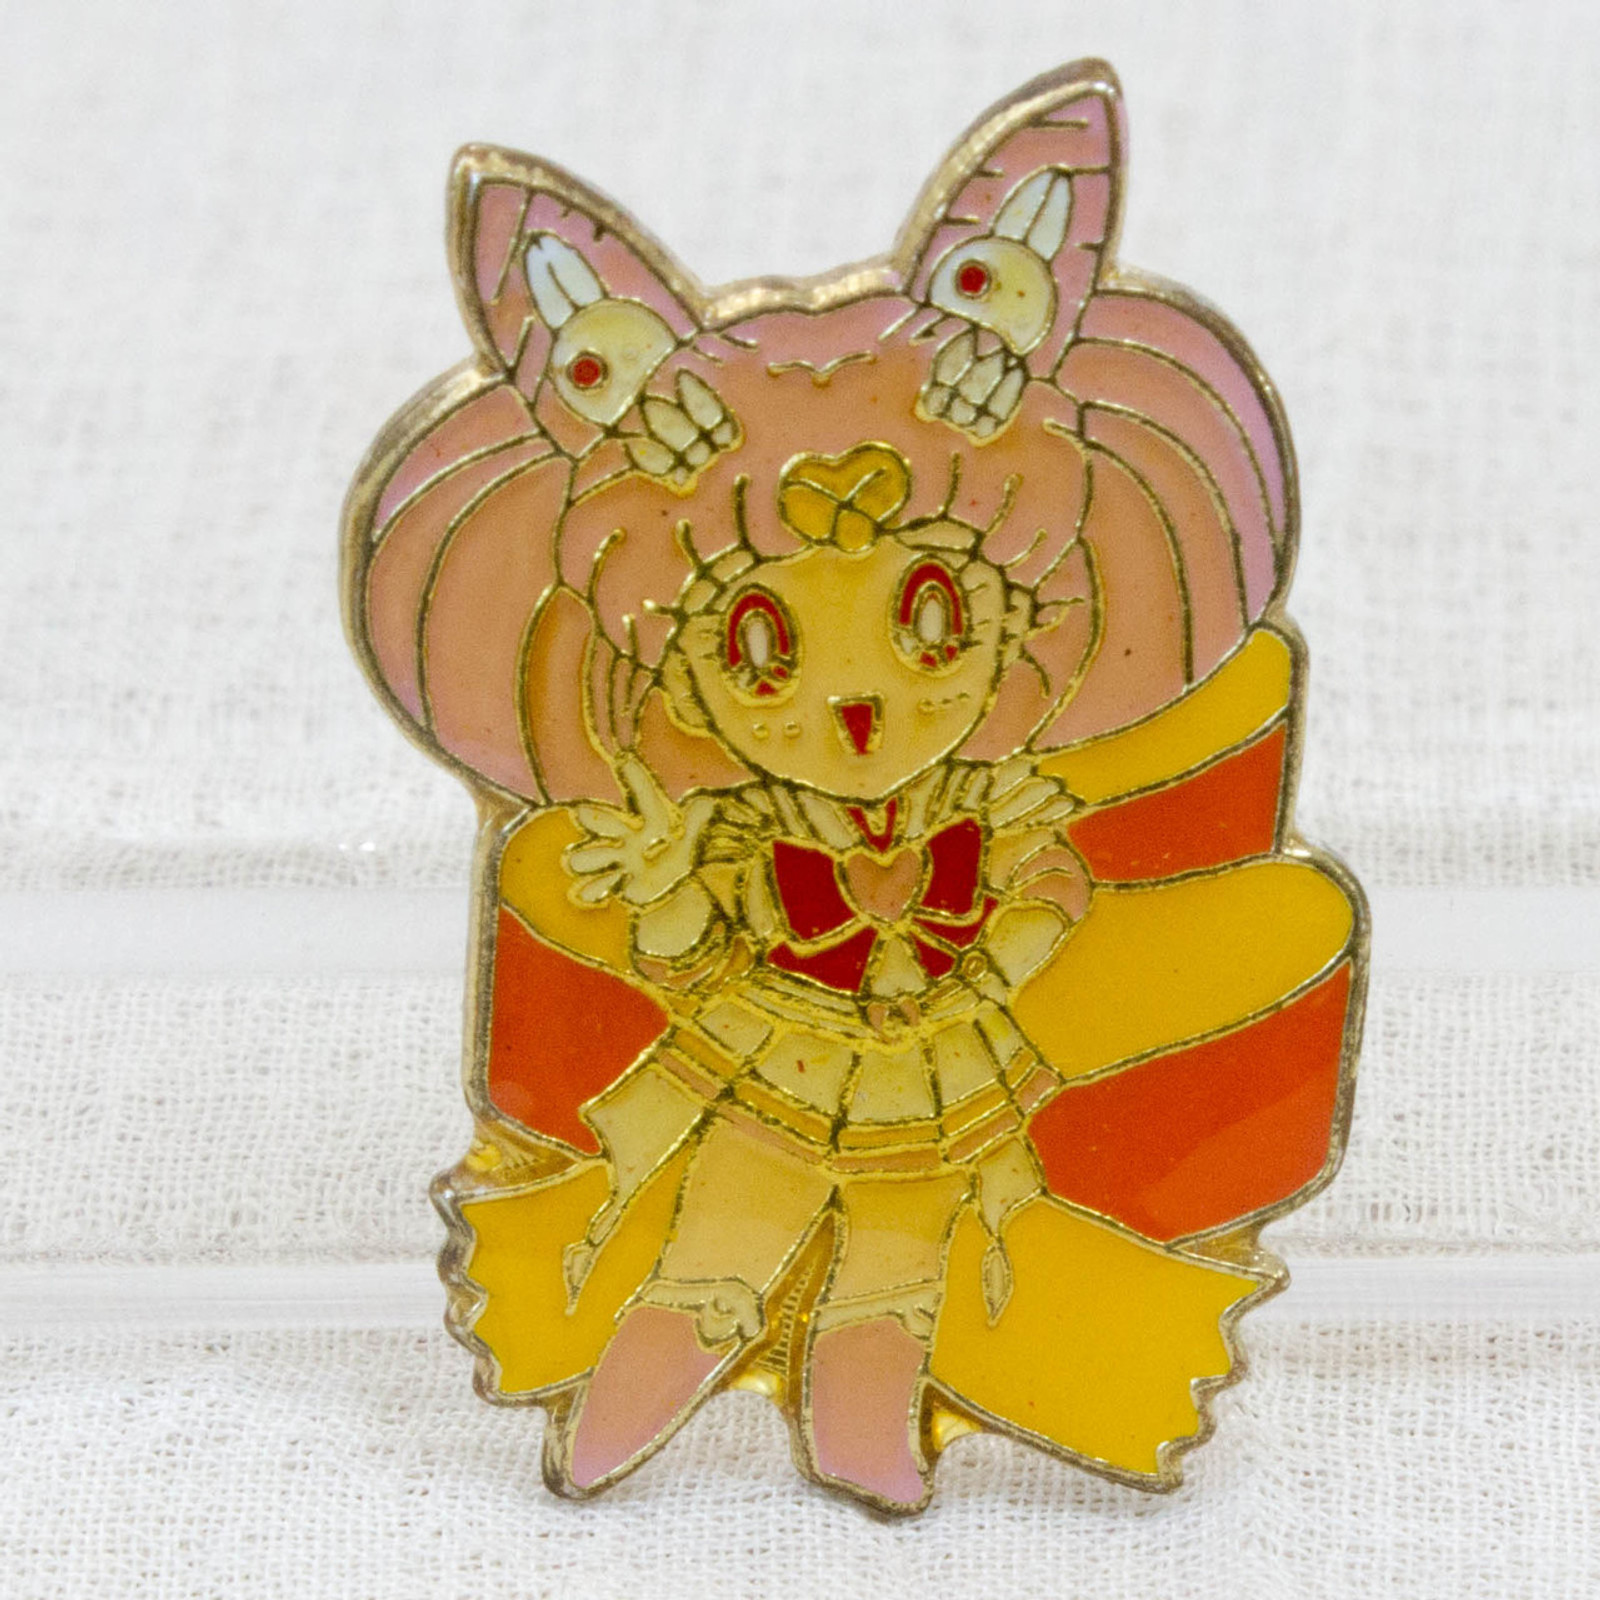 Sailor Moon Sailor Chibi Moon (Chibiusa) Metal Pins Badge JAPAN ANIME